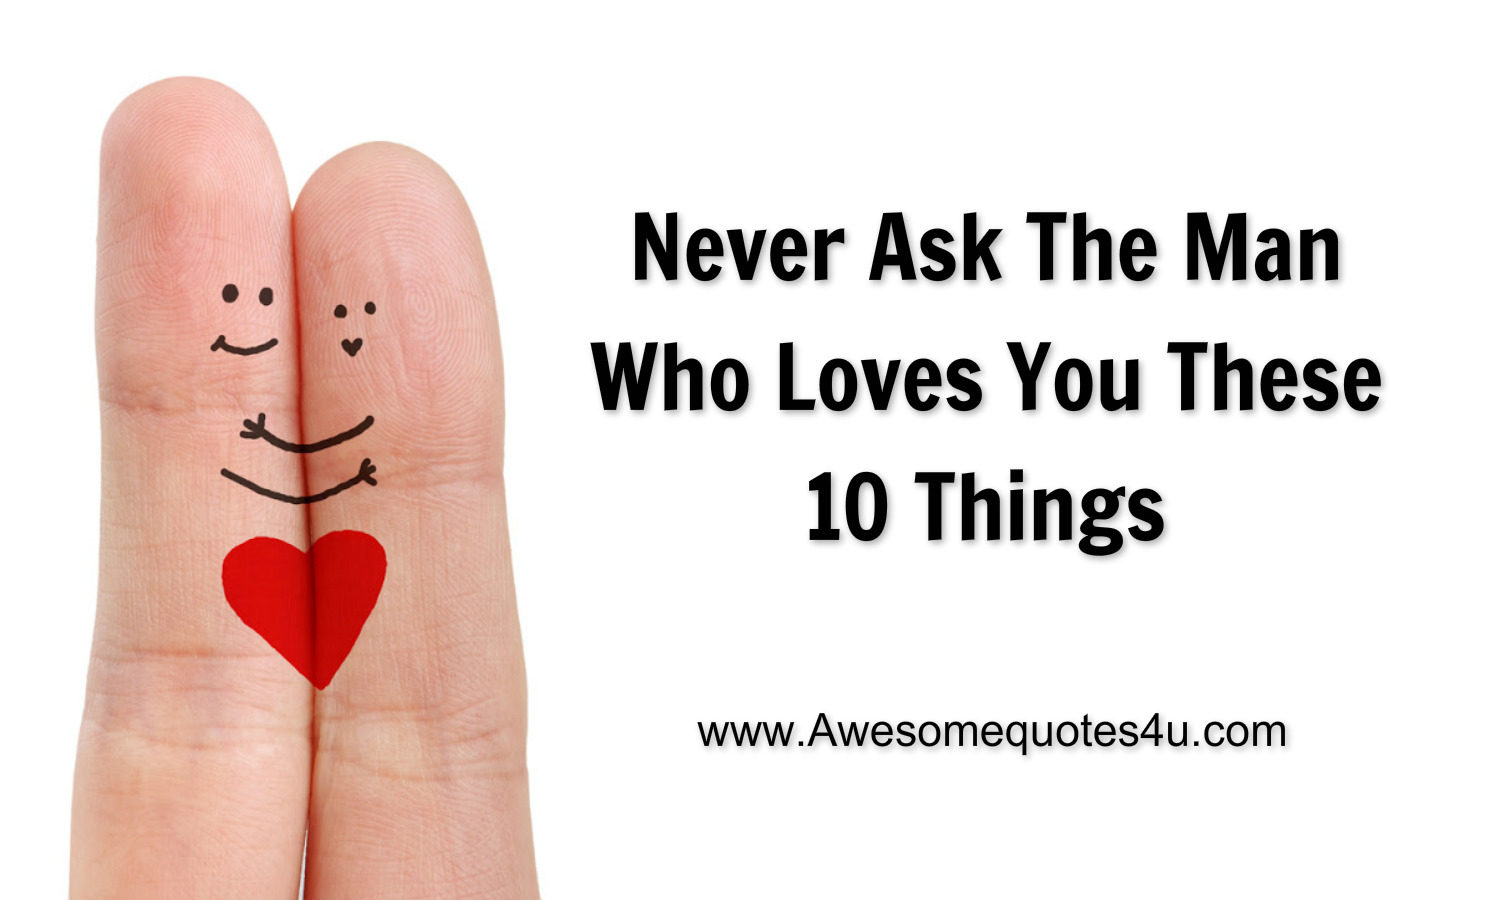 How to see if he really loves you